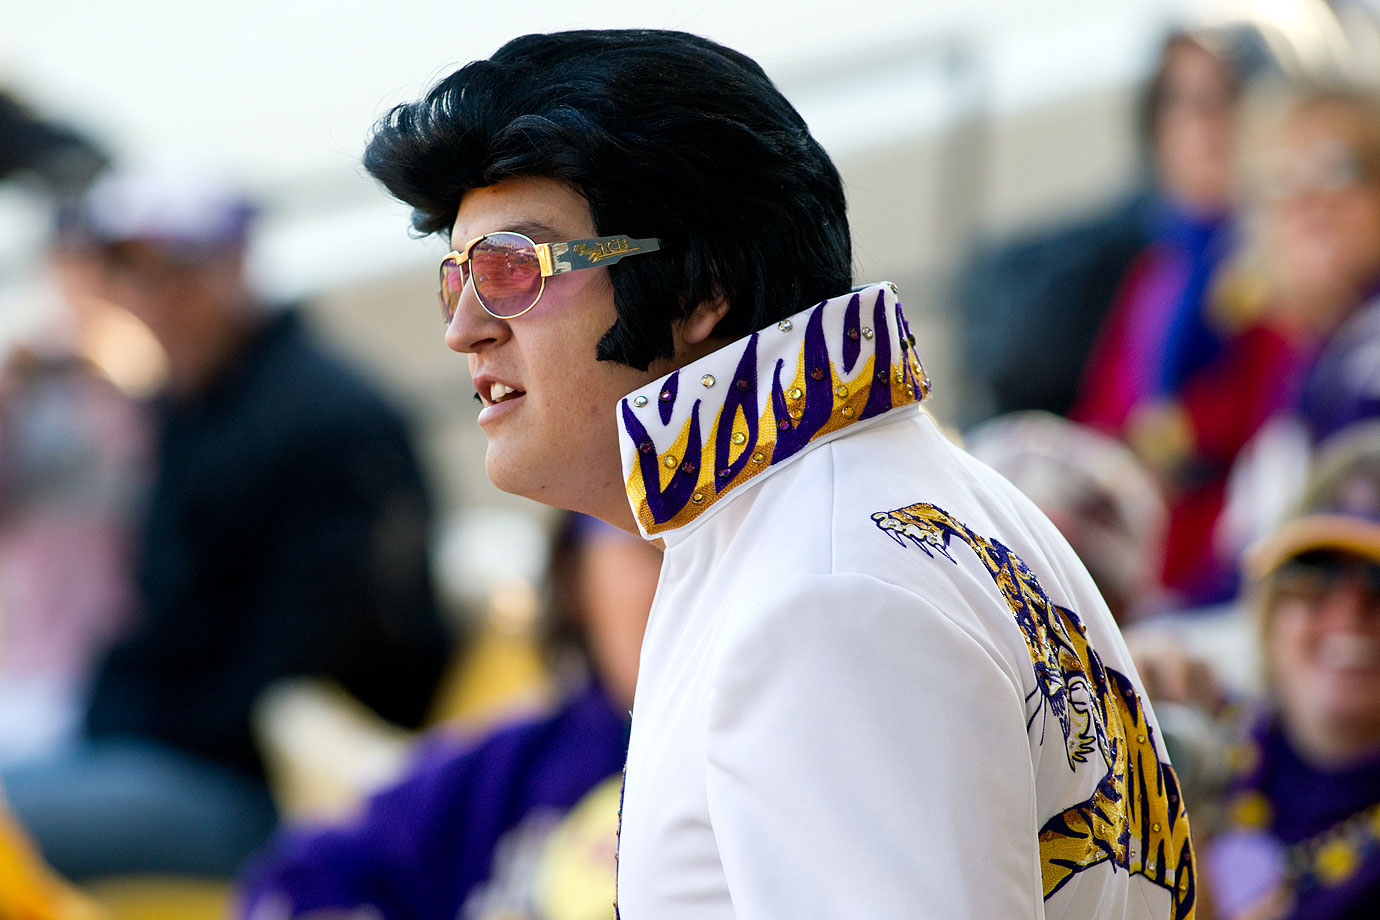 An LSU and Elvis fan watches the 2012 Tiger Classic softball game against Penn State at Tiger Park in Baton Rouge, La.